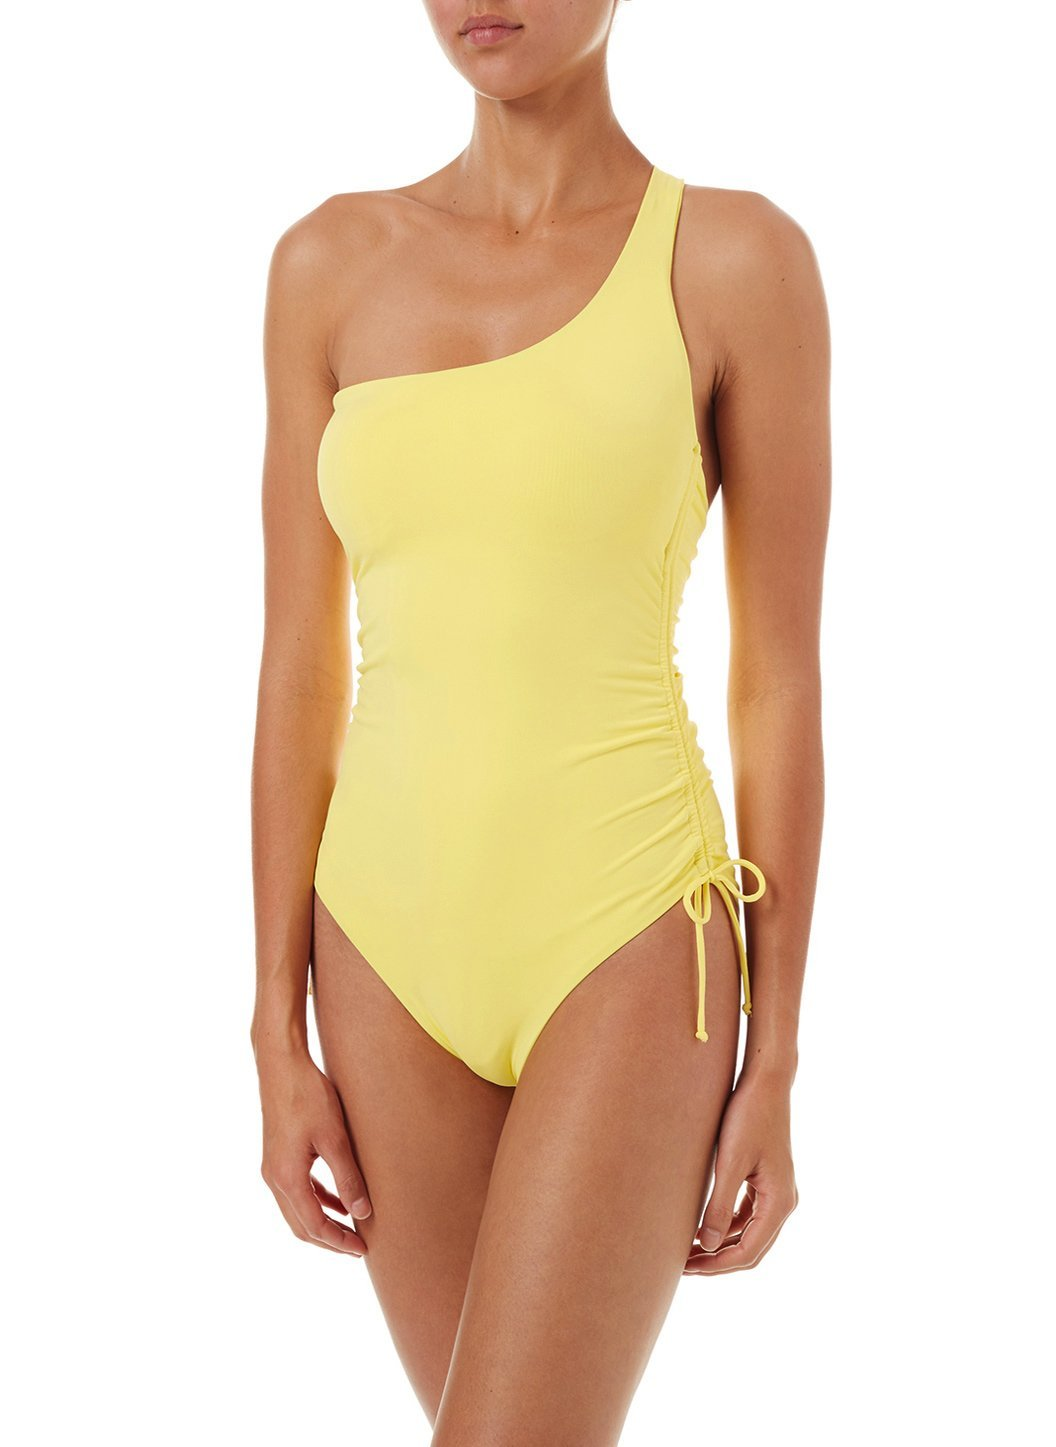 polynesia yellow oneshoulder ruched onepiece swimsuit 2019 F